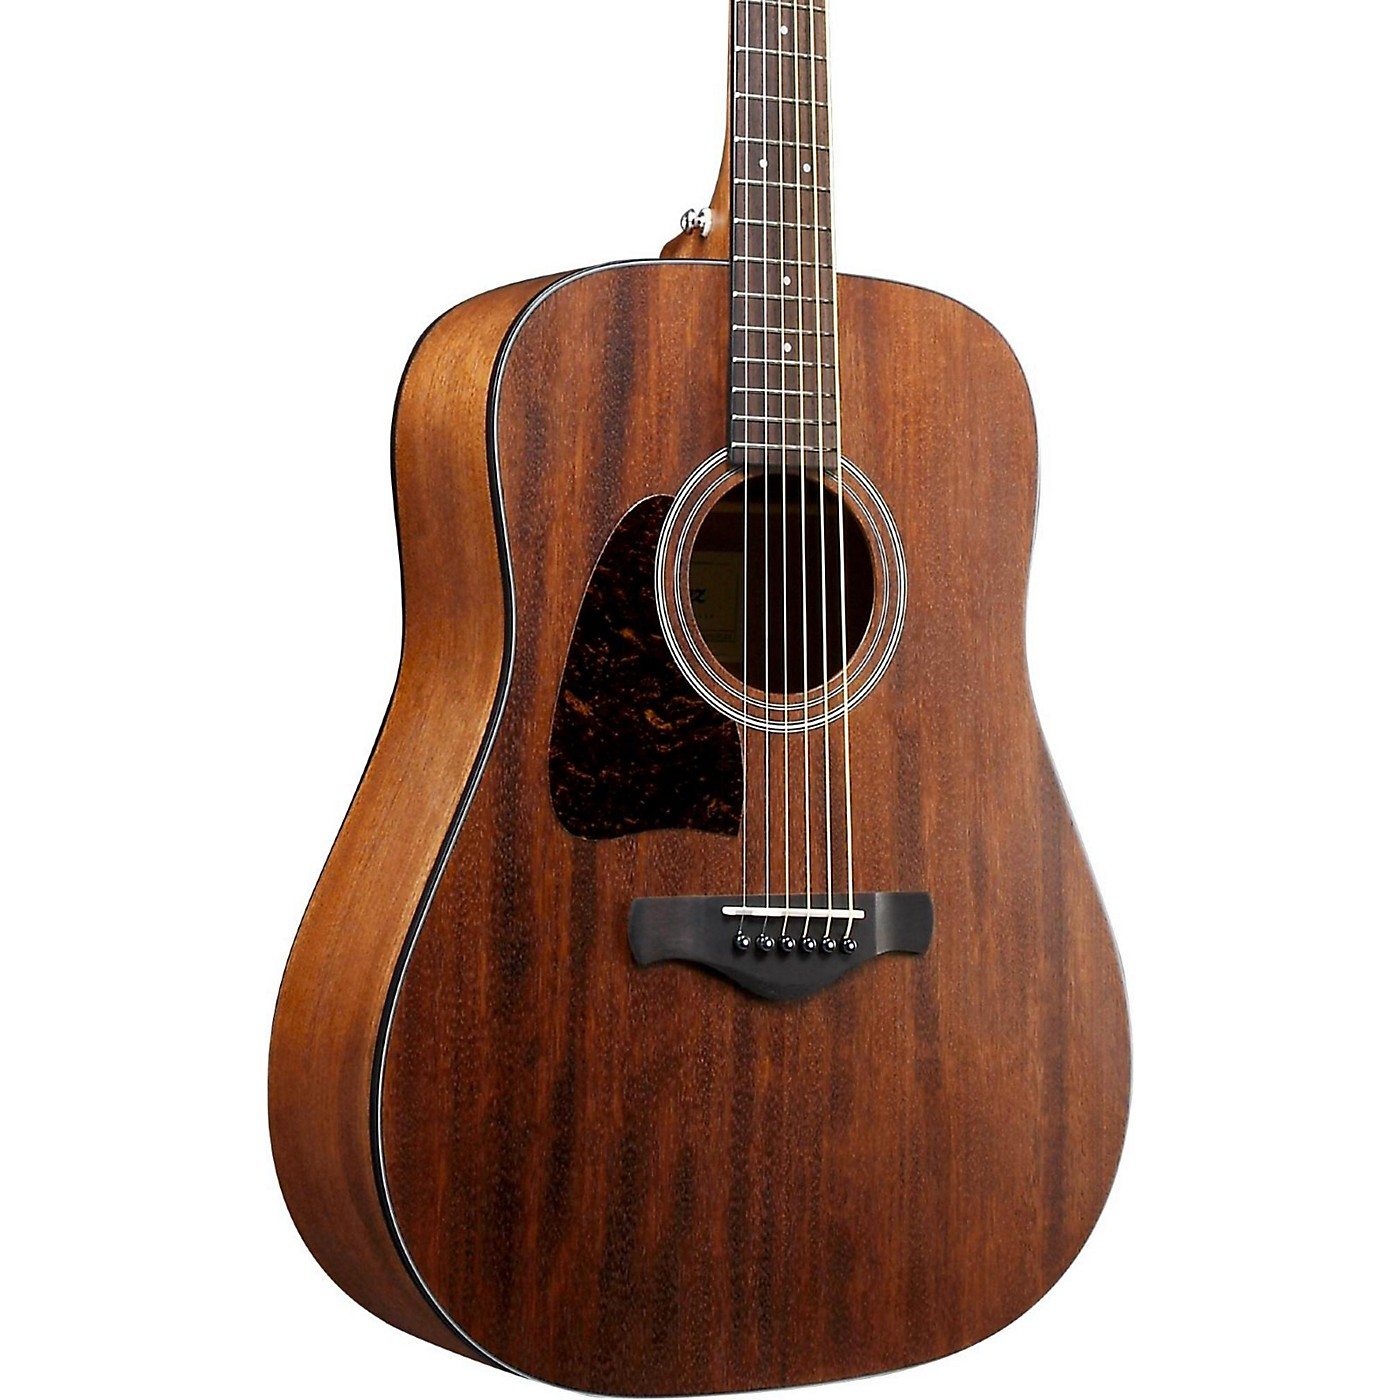 Ibanez AW54LOPN Left-Handed Mahogany Dreadnought Acoustic Guitar thumbnail